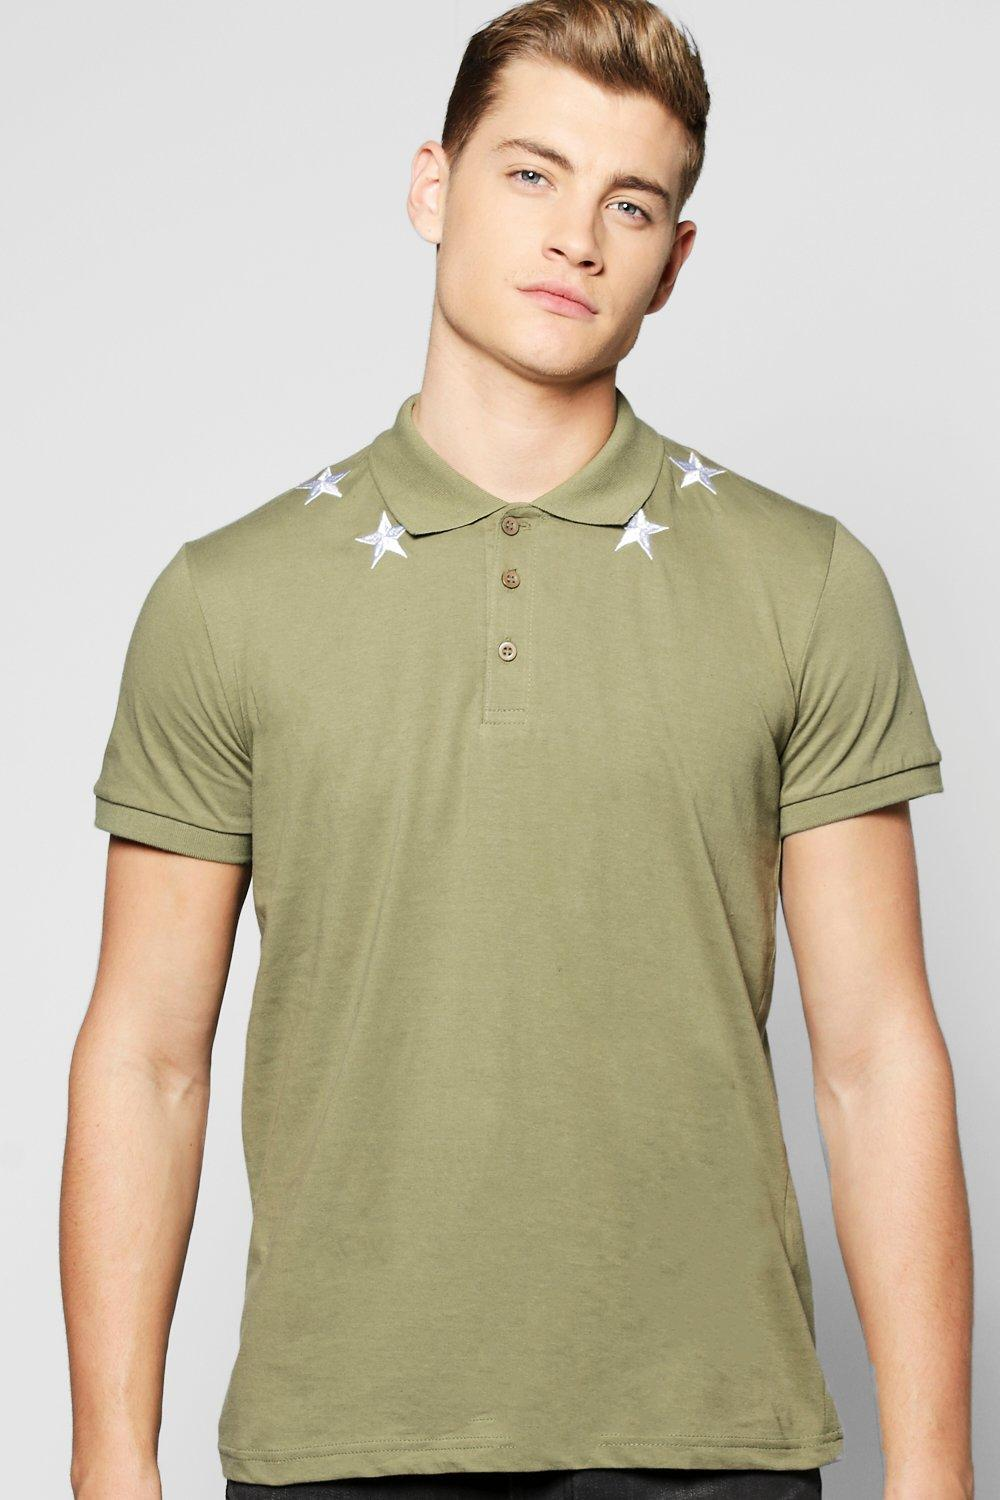 Star Embroided Polo